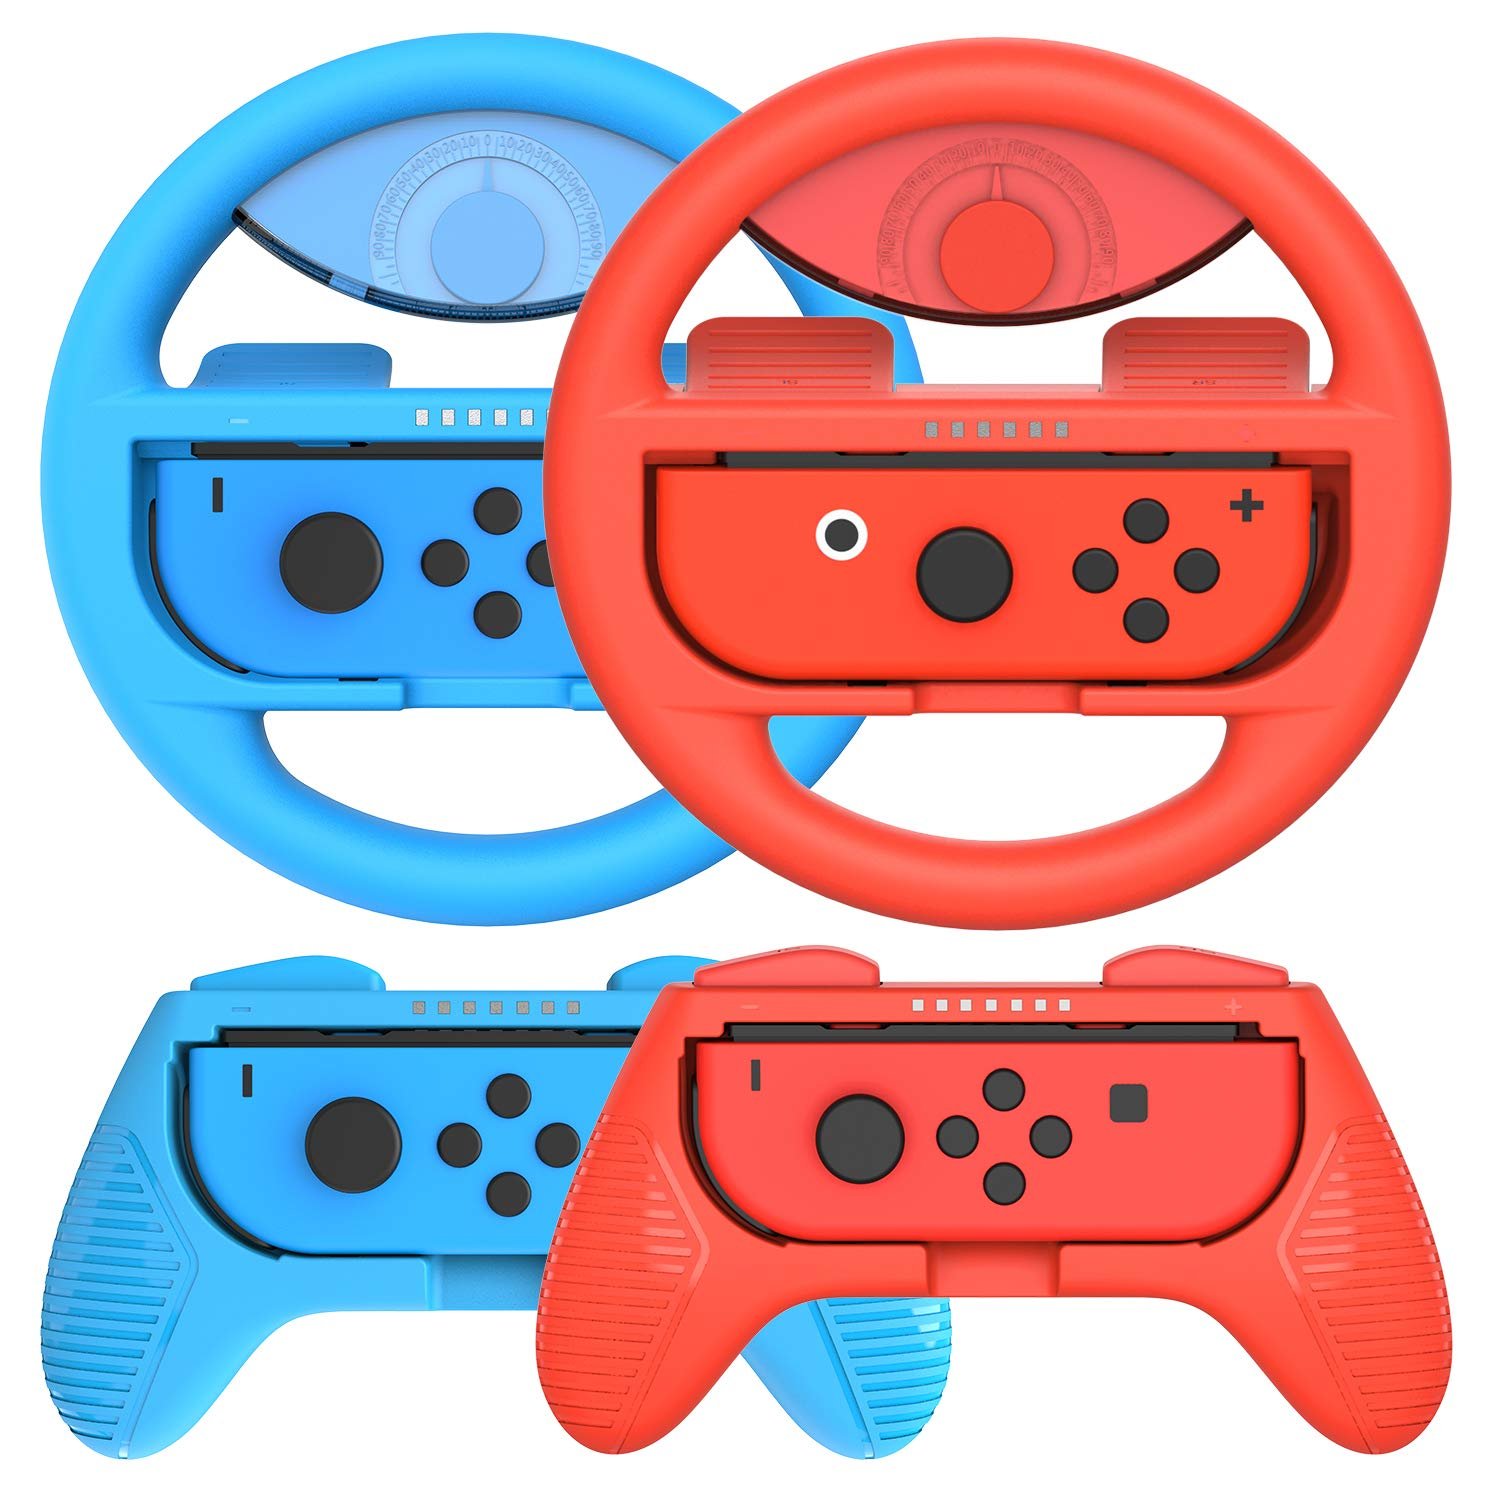 momen Switch Joy-Con - Volante y mango para Nintendo Switch Controller / Mario Kart Switch, Deluxe 4 piezas Nintendo Switch accesorios para Switch Joy-Con y Switch Juegos, Rojo & Azul: Amazon.es: Electrónica